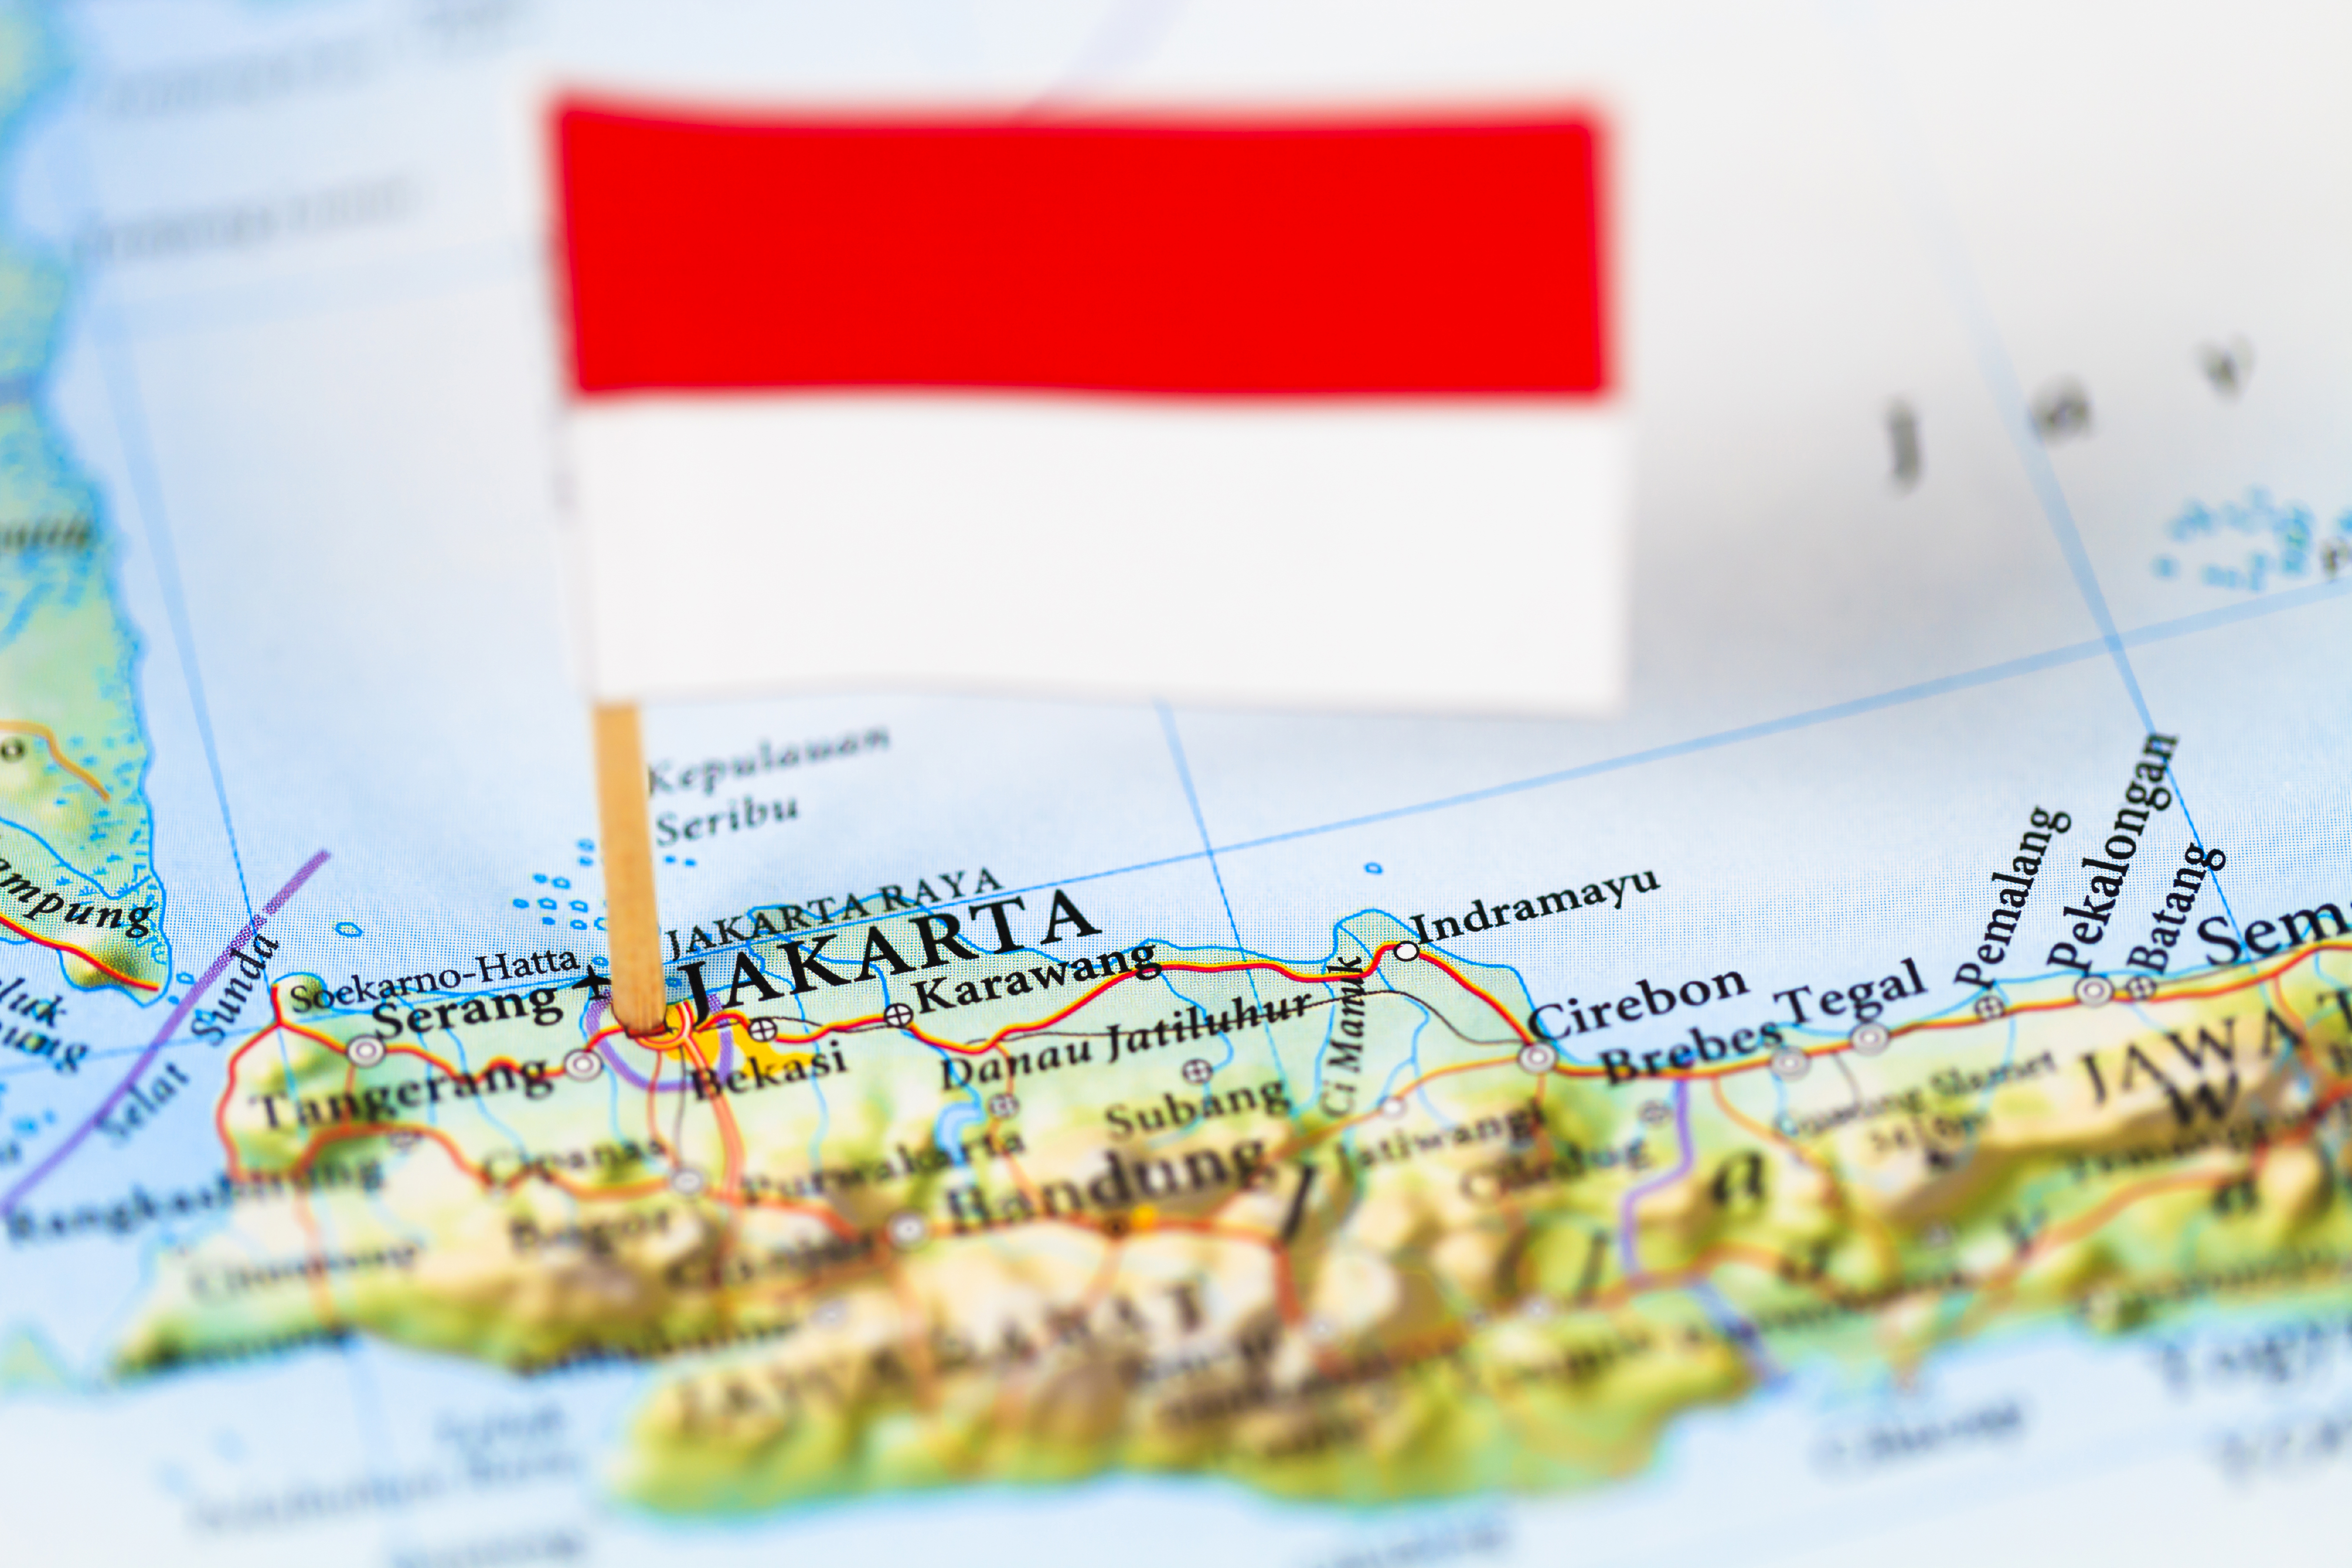 Map Of Asia Jakarta.Indonesia Jakarta Asia Map Flag Global Trade Review Gtr